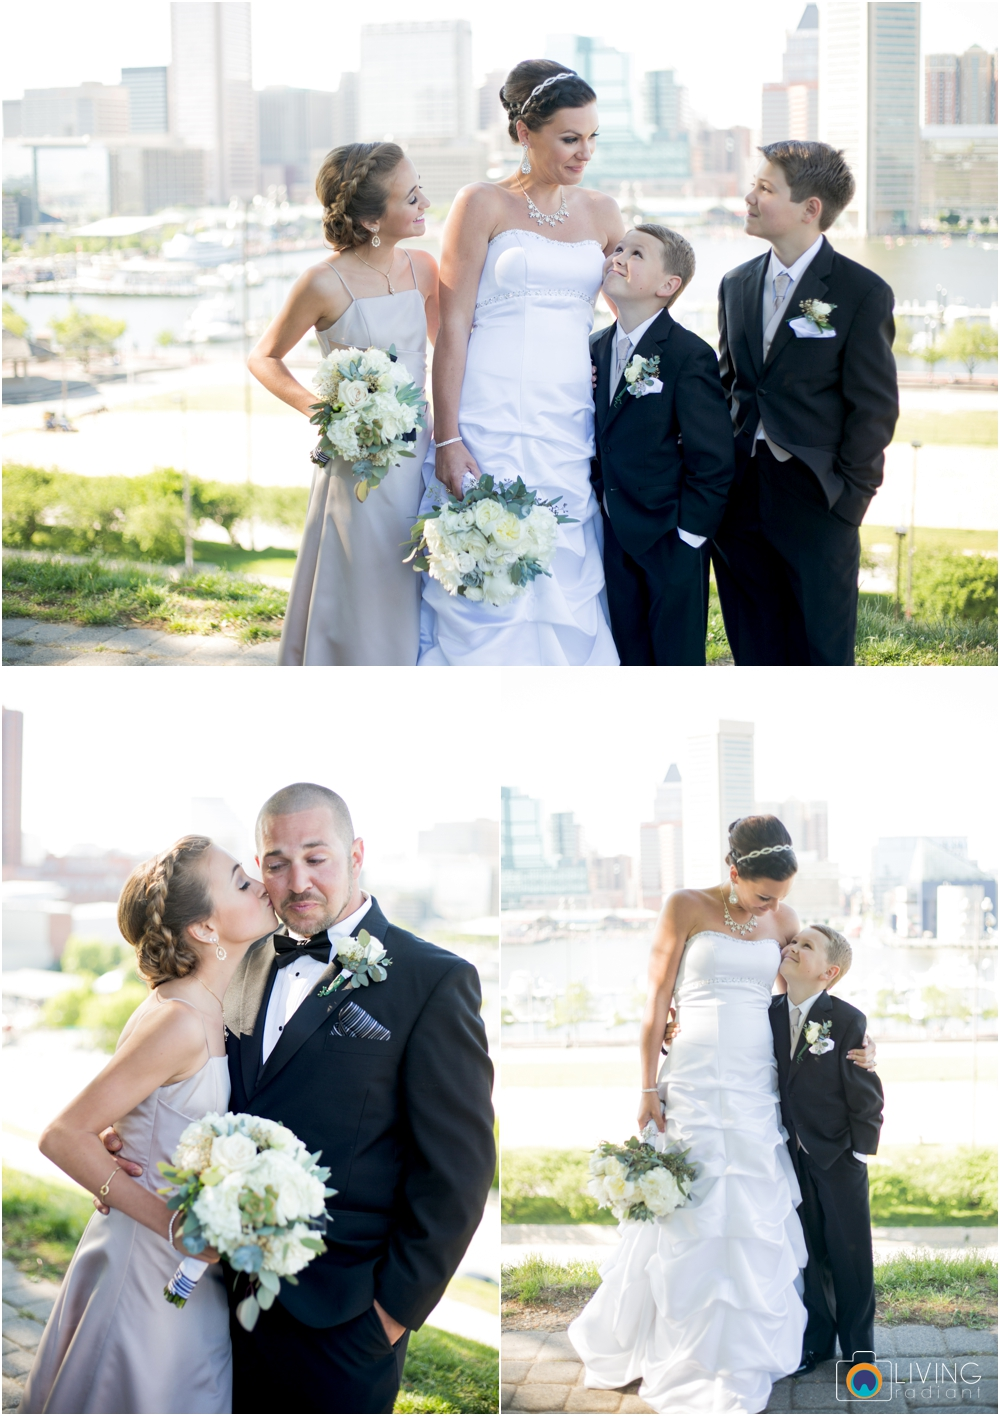 jessica-kevin-mcnally-AVAM-american-visionary-art-museum-downtown-federal-hill-baltimore-inner-harbor-wedding-living-radiant-photography-maggie-patrick-nolan_0038.jpg